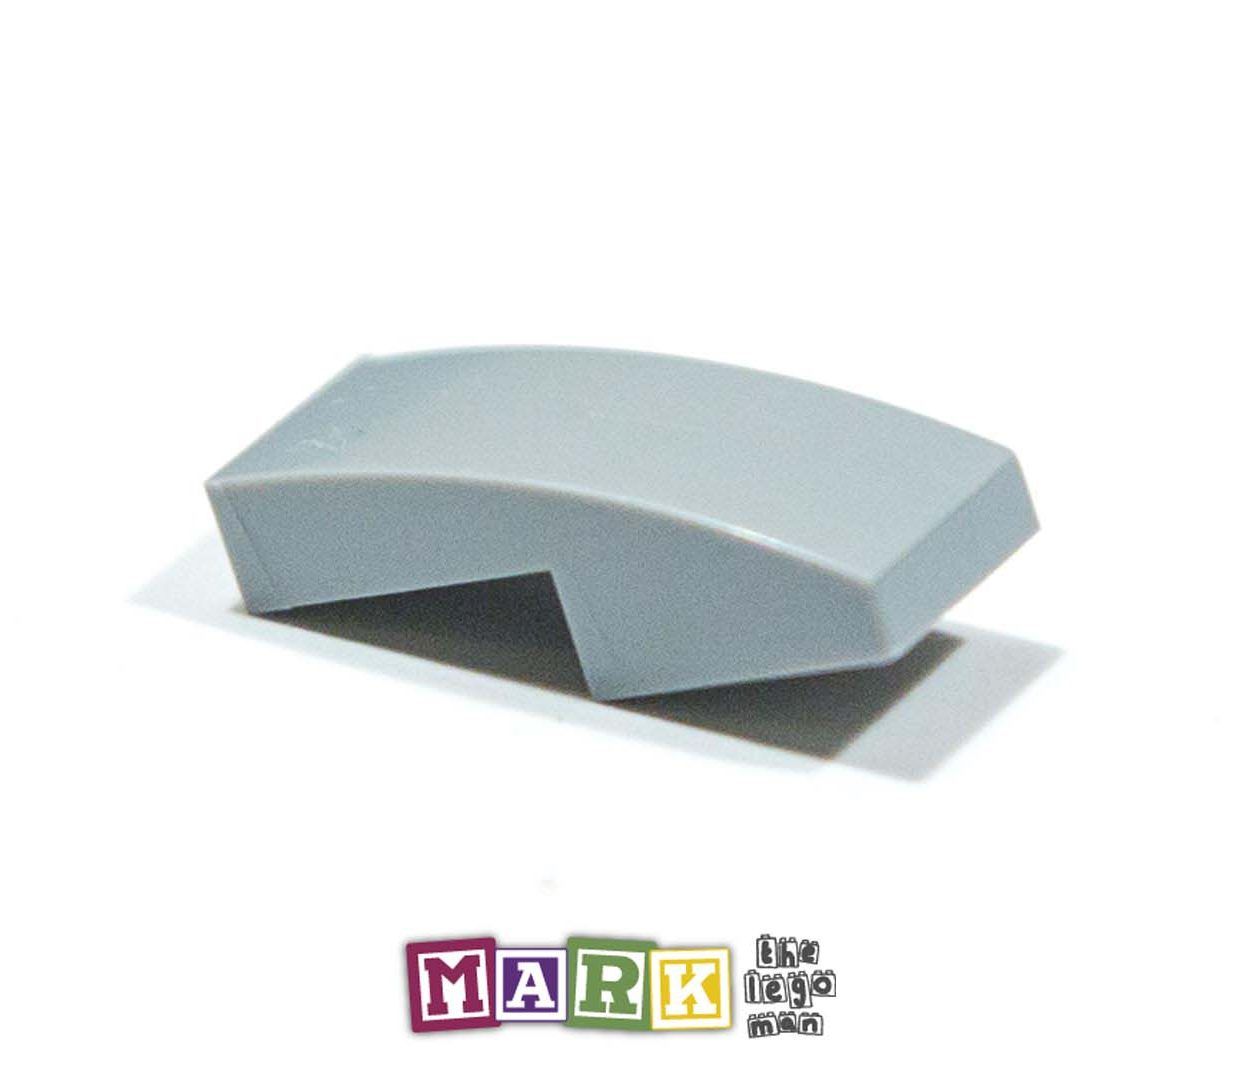 Lego 6028813 11477 1x Light Blueish Grey Md Stone Medium Standard Grey 1x2x2 3 Sloped Plate With Bow